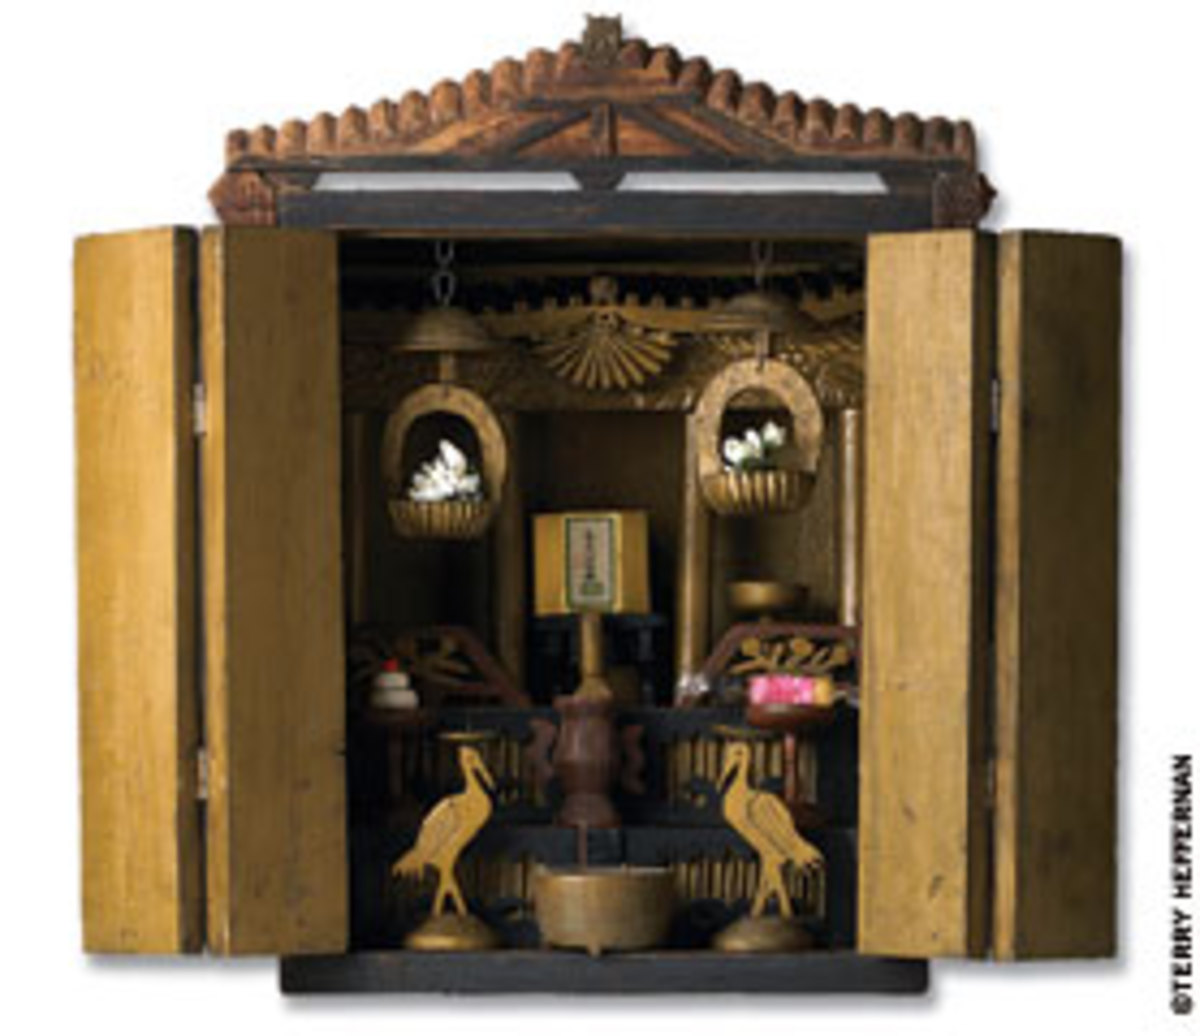 Kichitaro Kawase, interned at Amache, Colo., used scrap wood, metal and paint for this butsudan, a wooden cabinet with doors that enclose and protect a religious icon and other items.